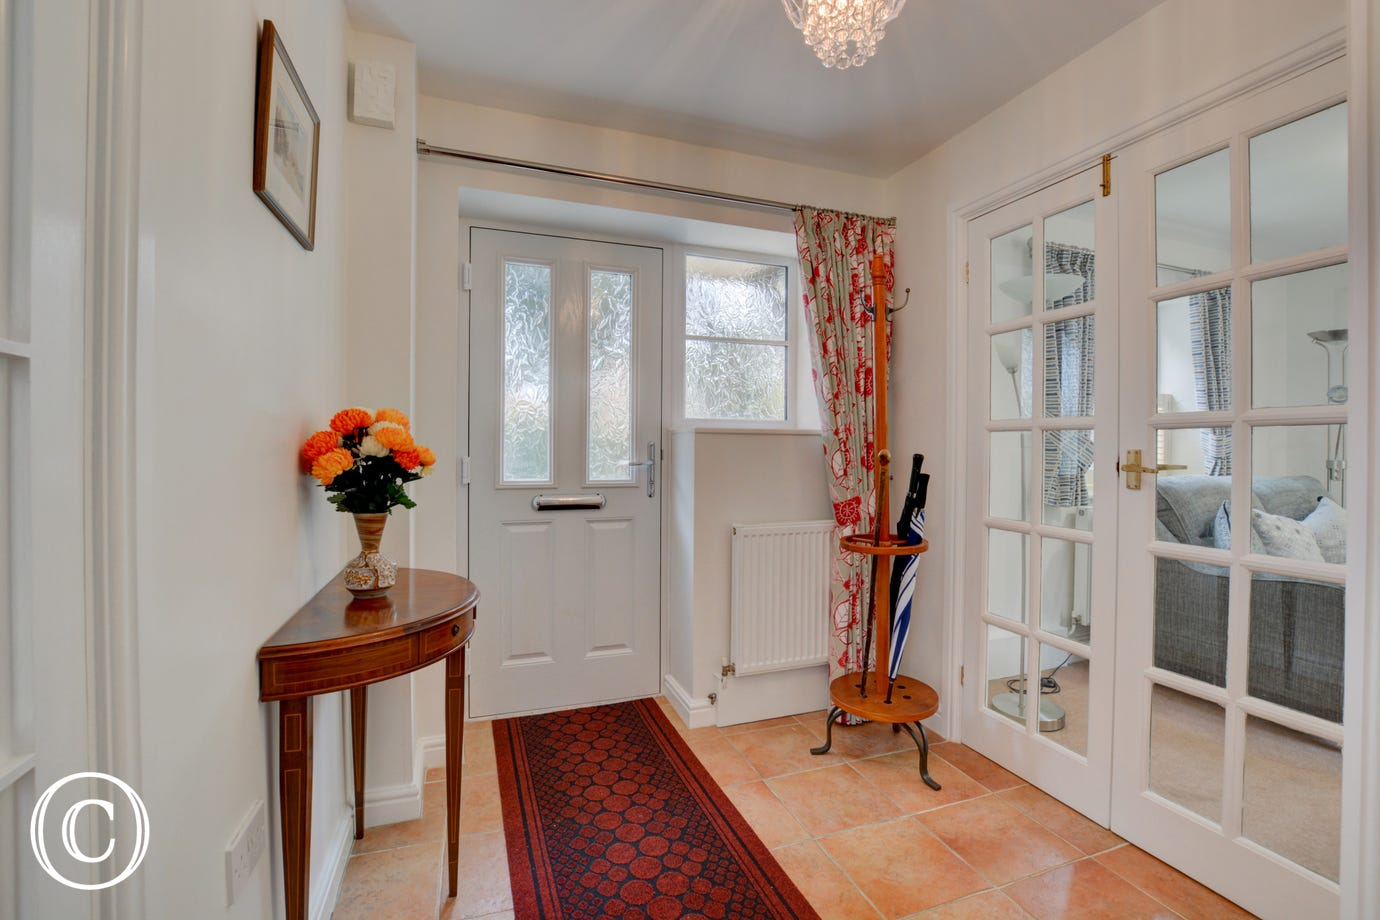 Entrance Hall with french doors into sitting room